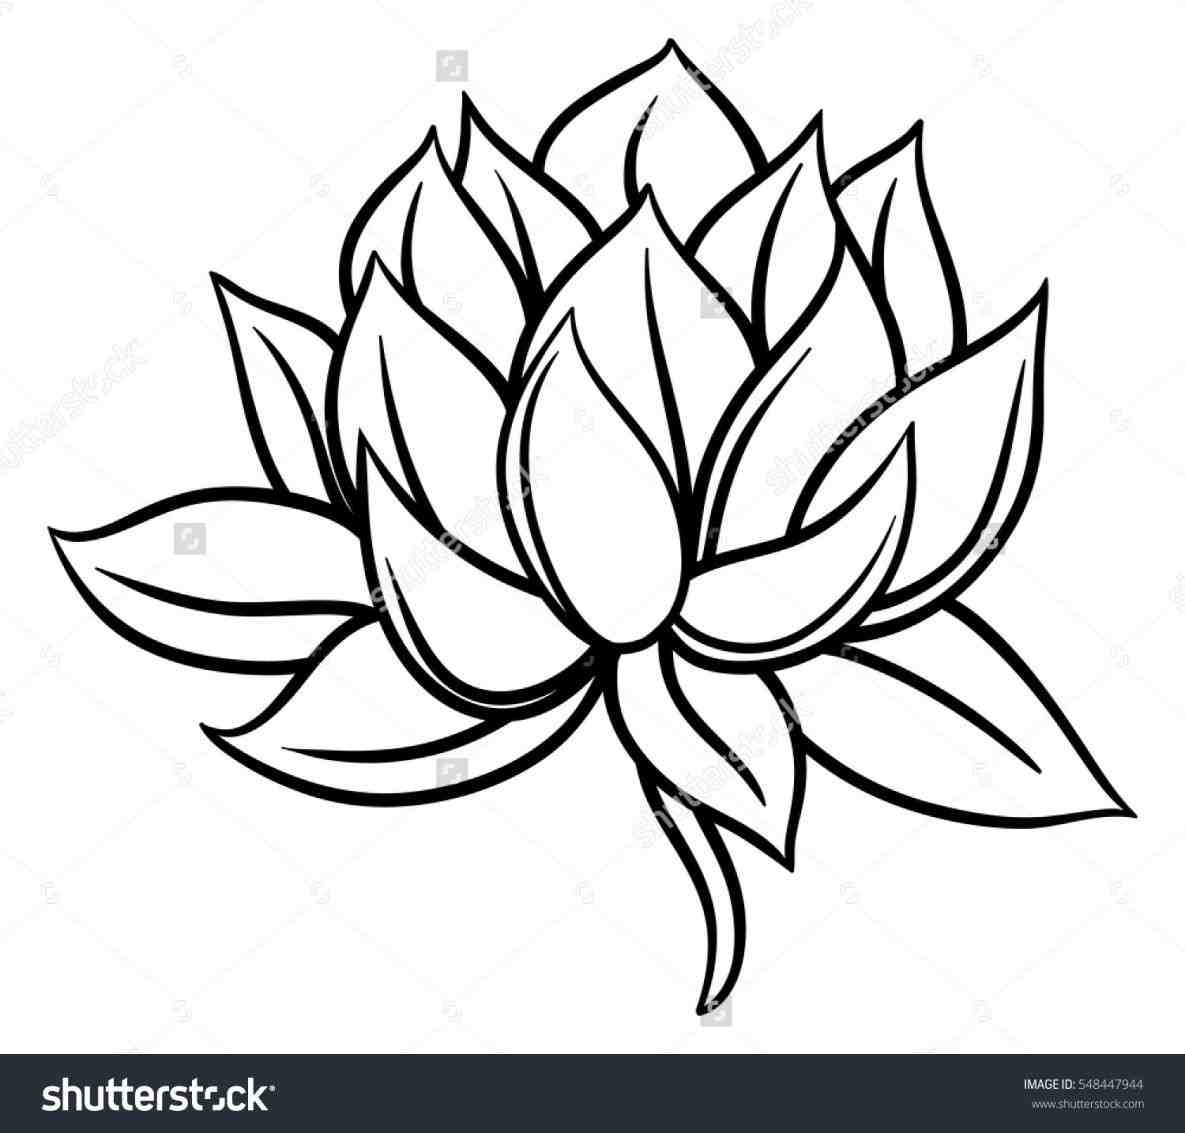 Lotus Images Drawing At Getdrawings Free For Personal Use